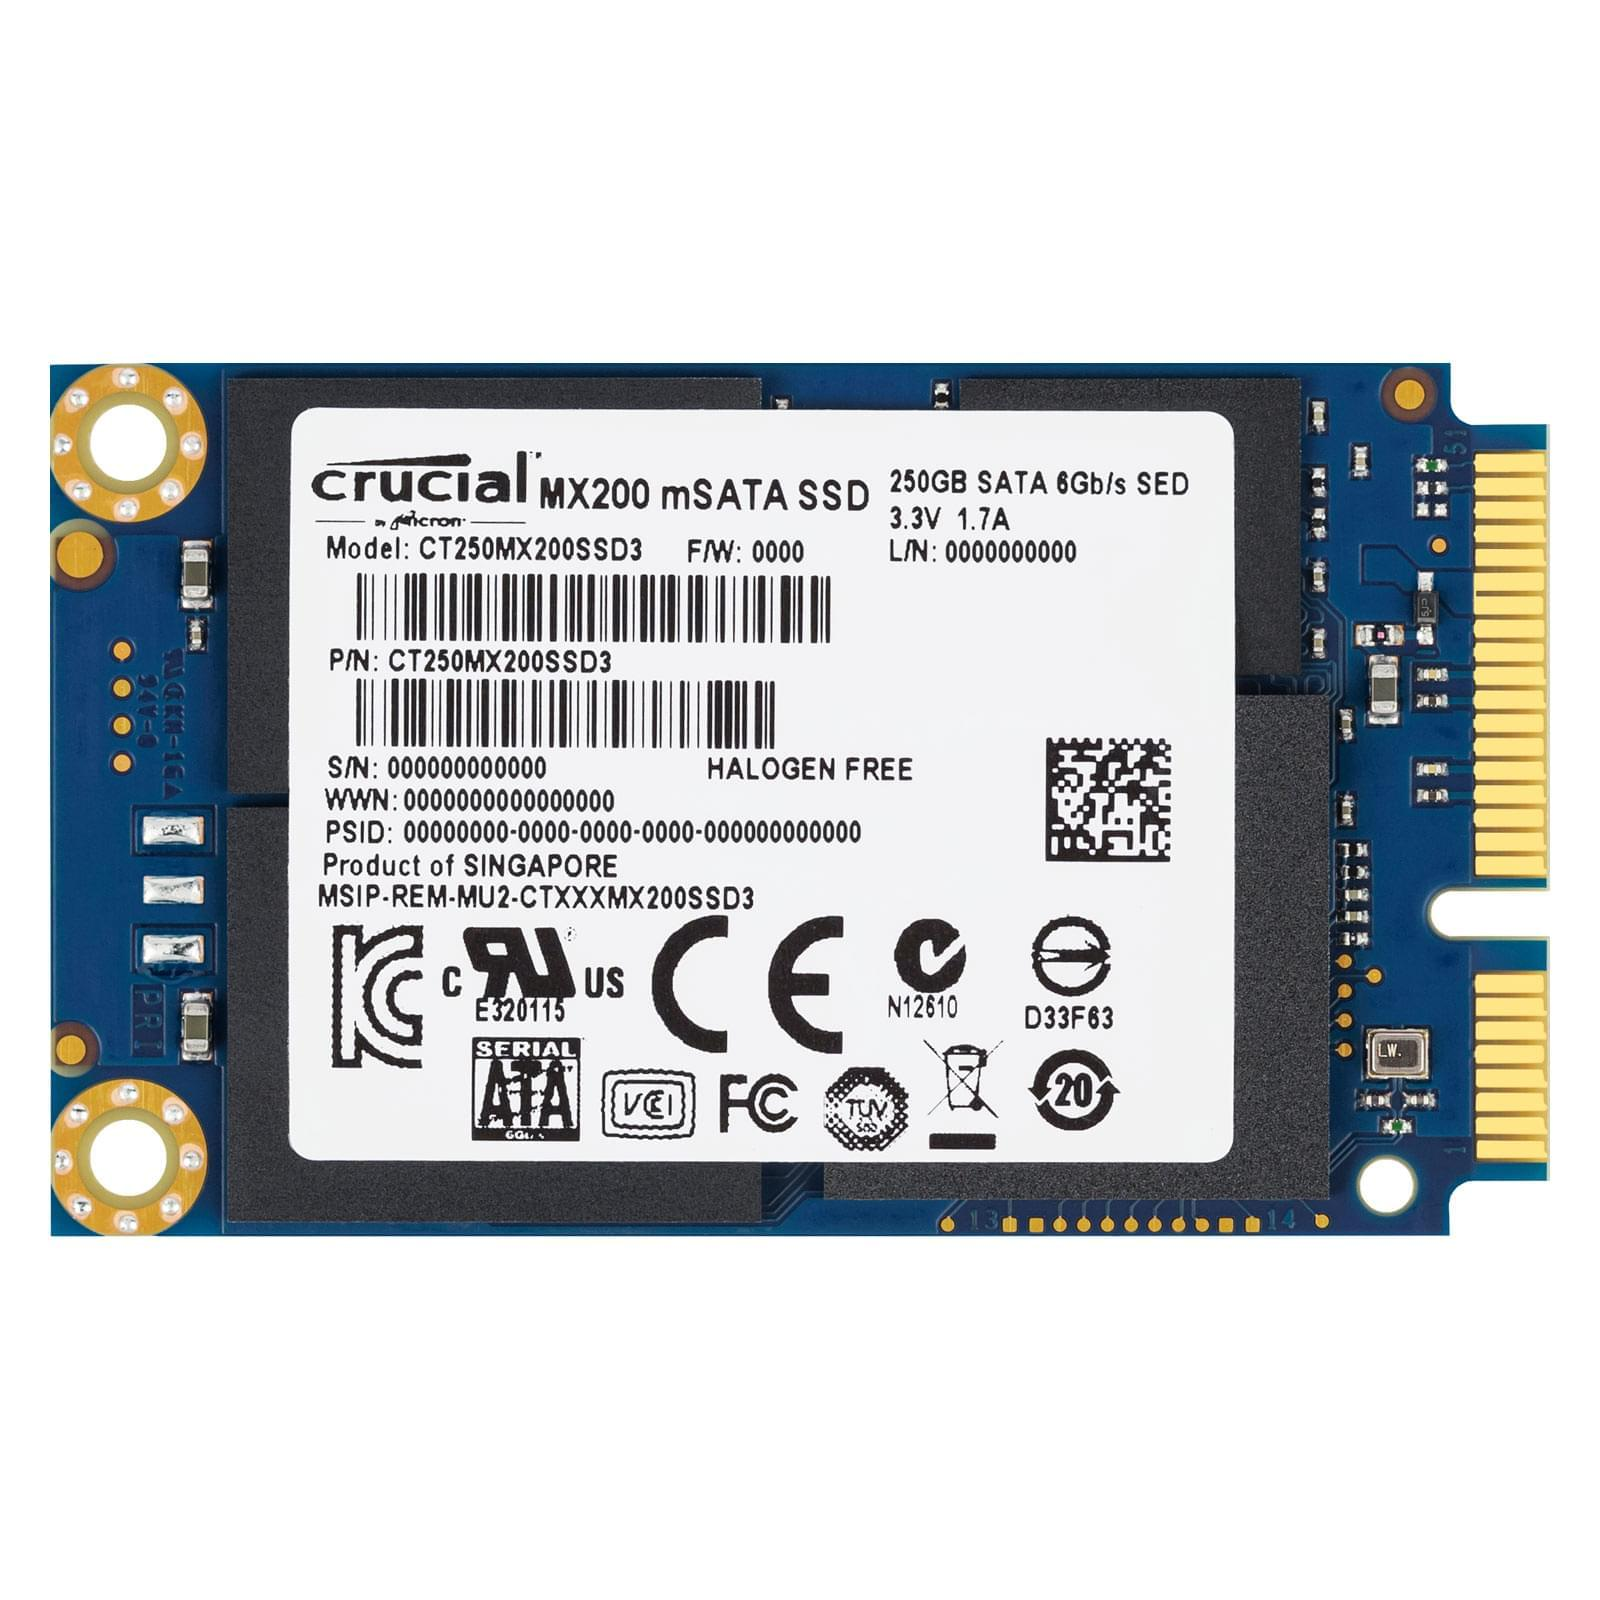 Crucial CT250MX200SSD3 240-275Go - Disque SSD Crucial - 0